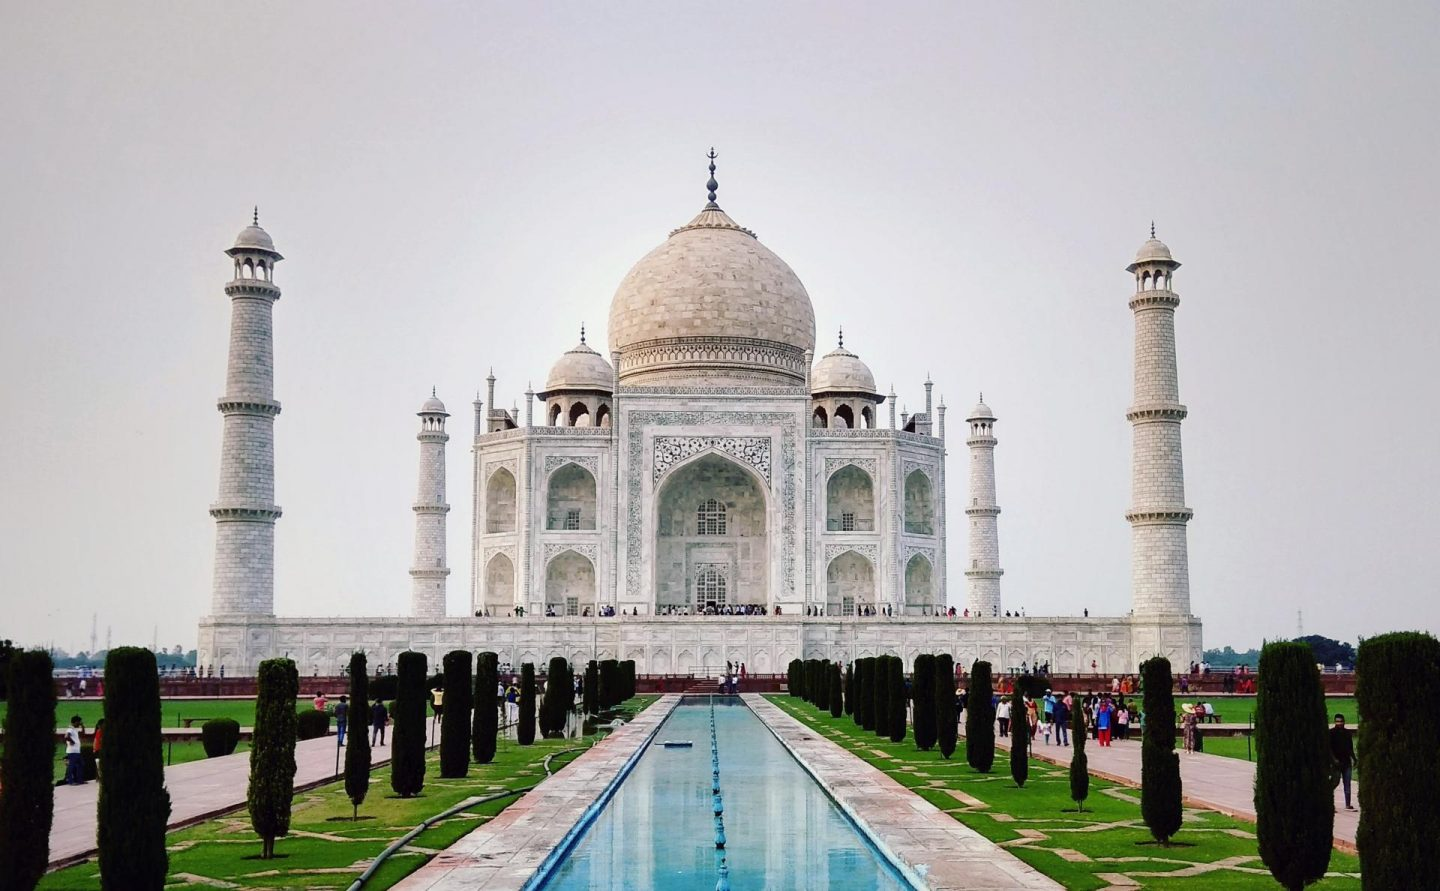 5 Reasons Why I Would Love to Visit India